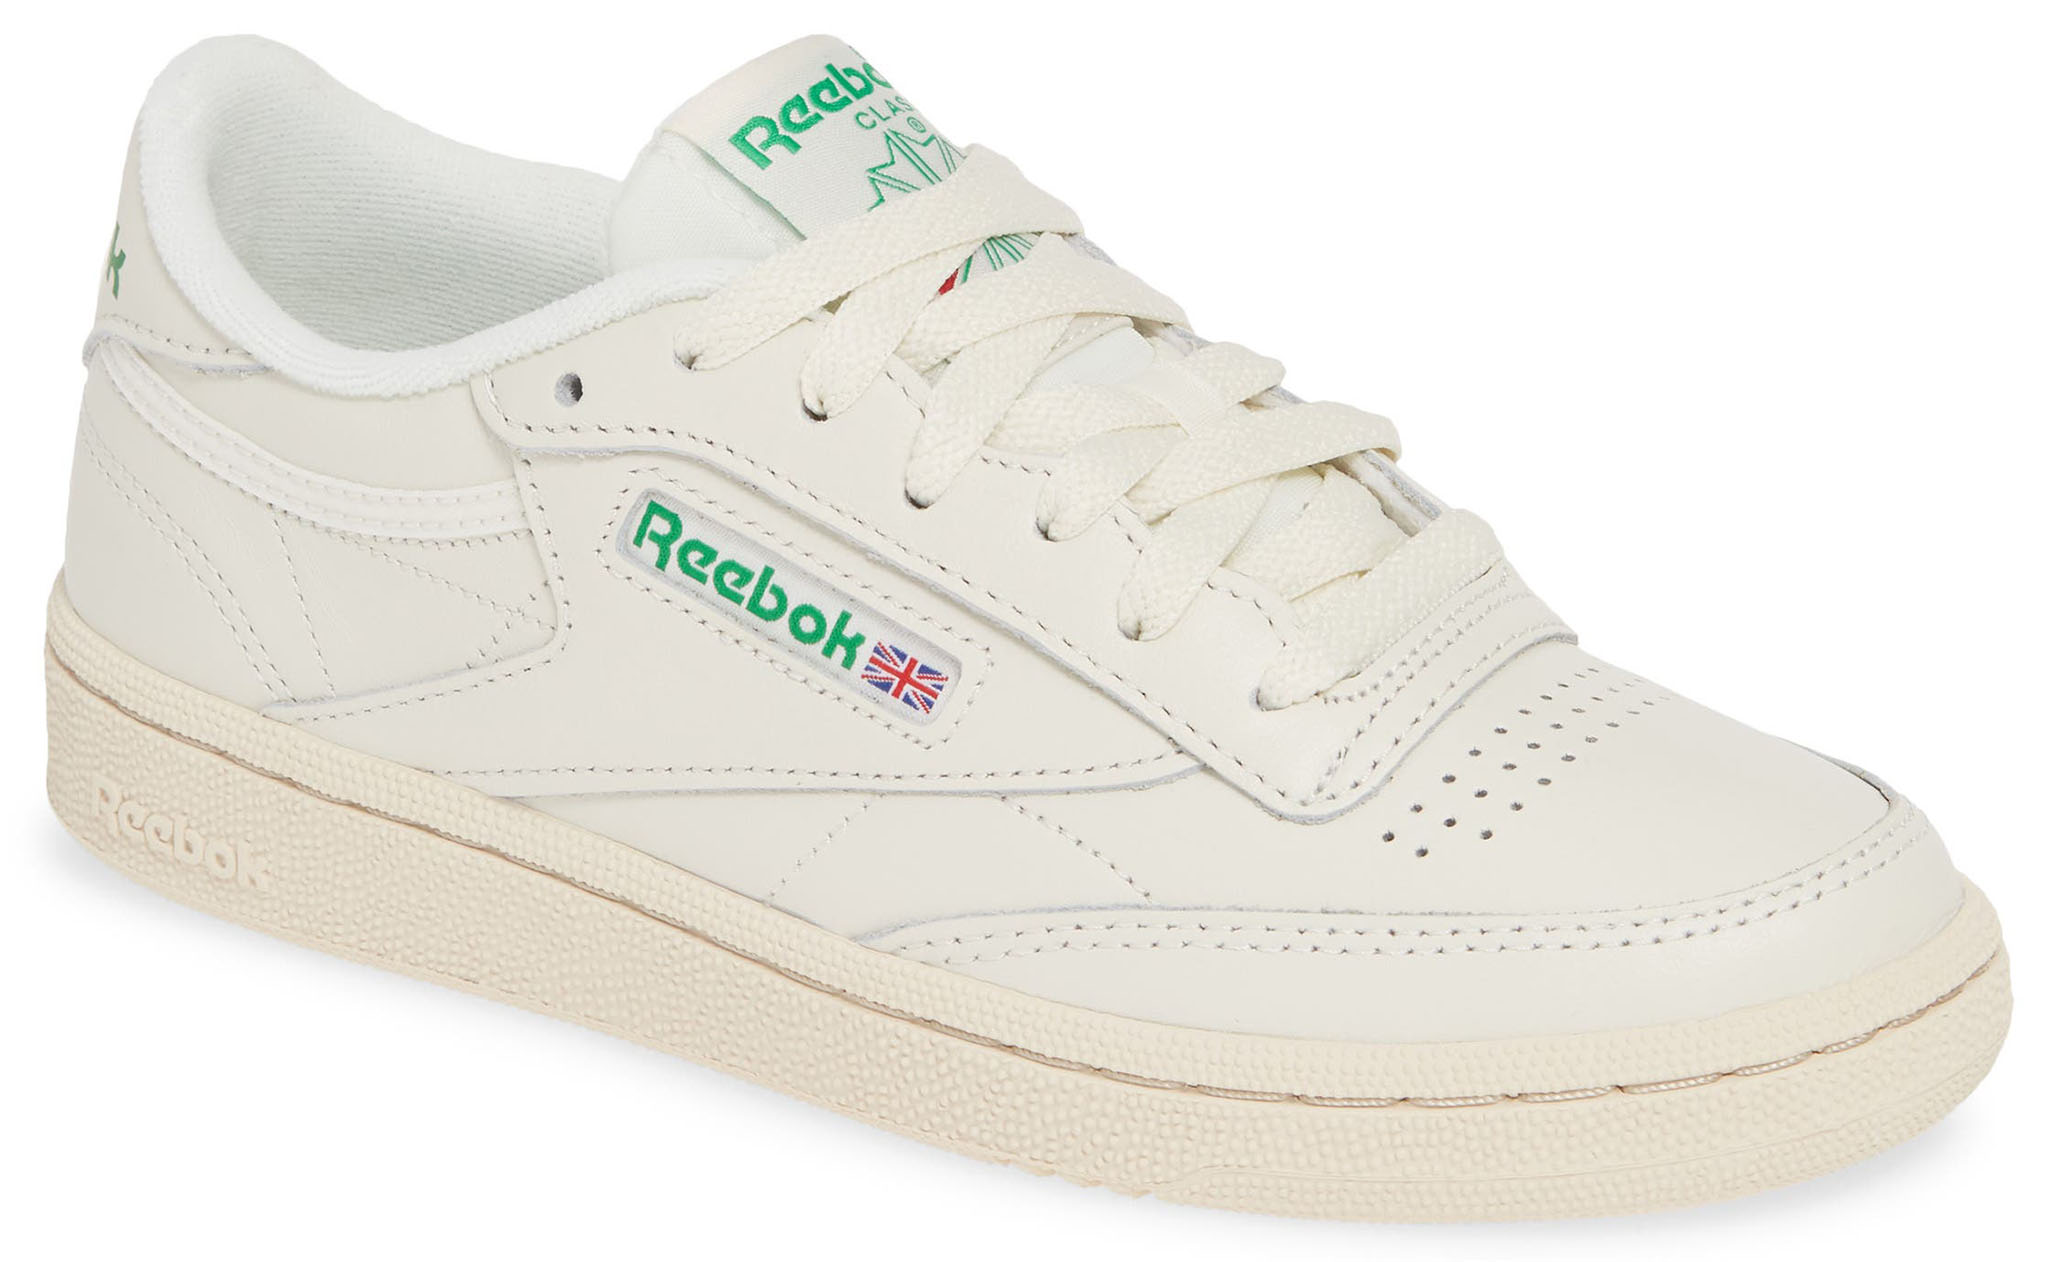 The toe perforations and window-detailed logo define the Reebok Club C 85 sneakers